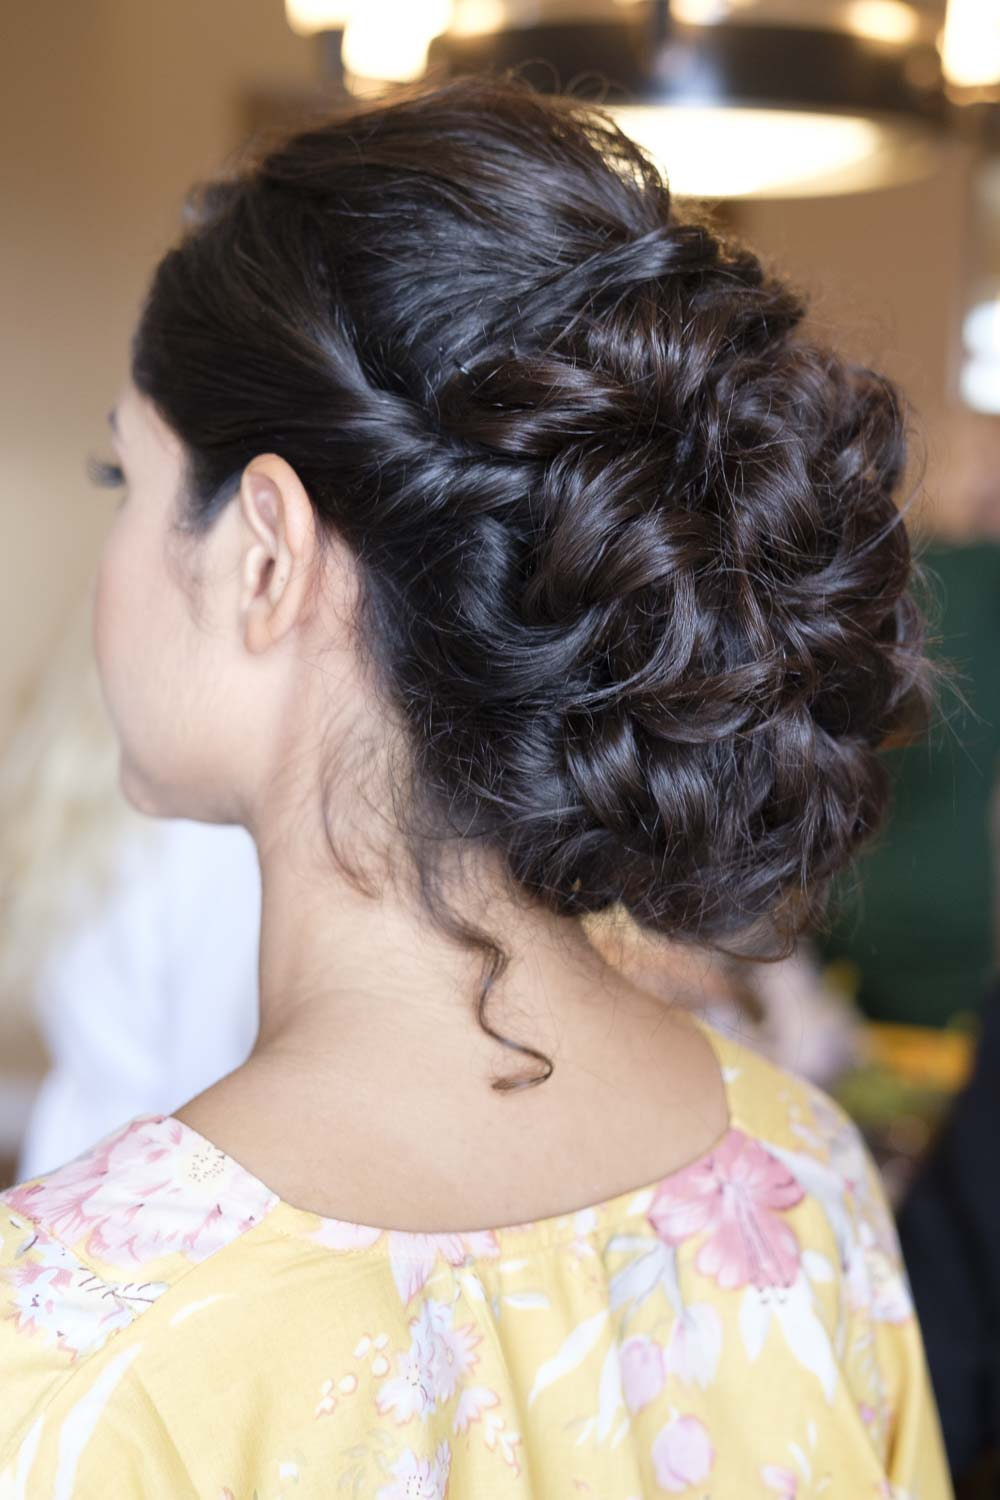 beauty affair bridal makeup and hairstyle los angeles_7.JPG